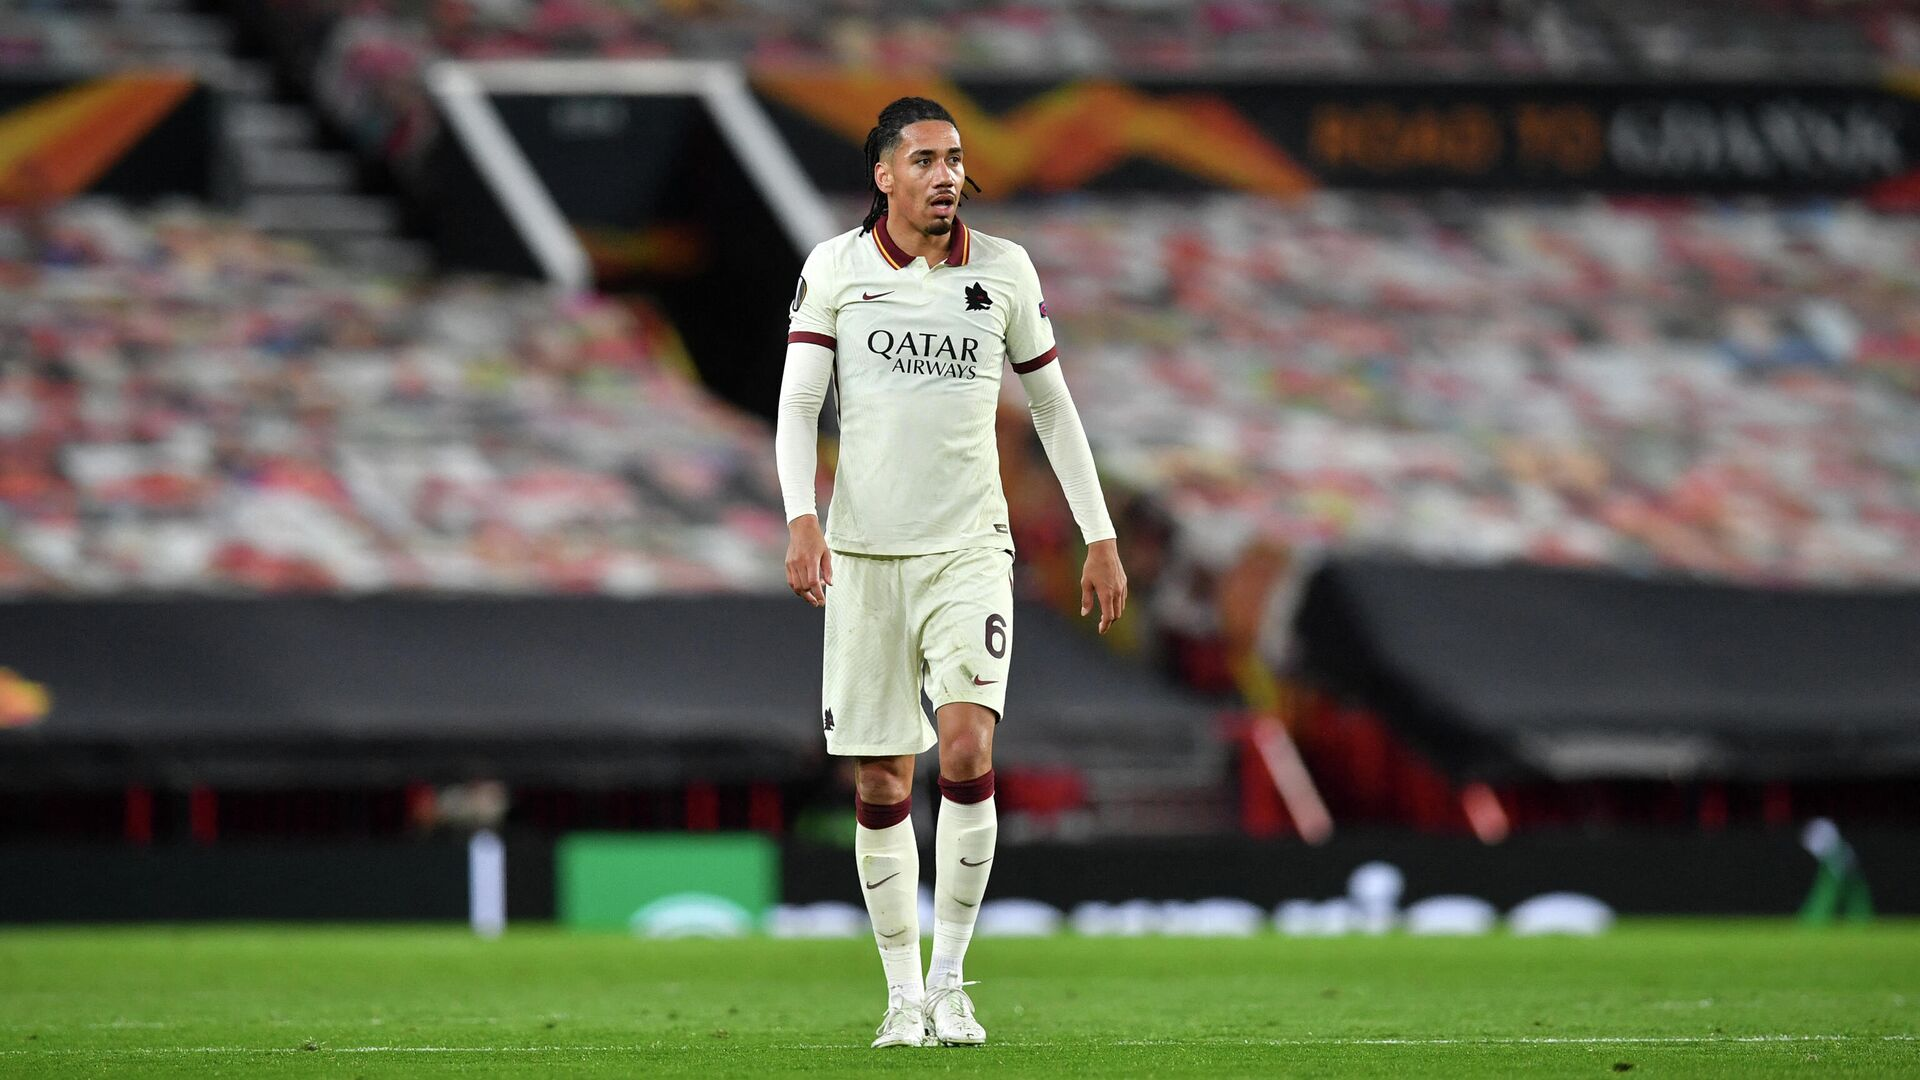 Former United player, Roma's English defender Chris Smalling looks on during the UEFA Europa League semi-final, first leg football match between Manchester United and Roma at Old Trafford stadium in Manchester, north west England, on April 29, 2021. (Photo by Paul ELLIS / AFP) - РИА Новости, 1920, 02.08.2021